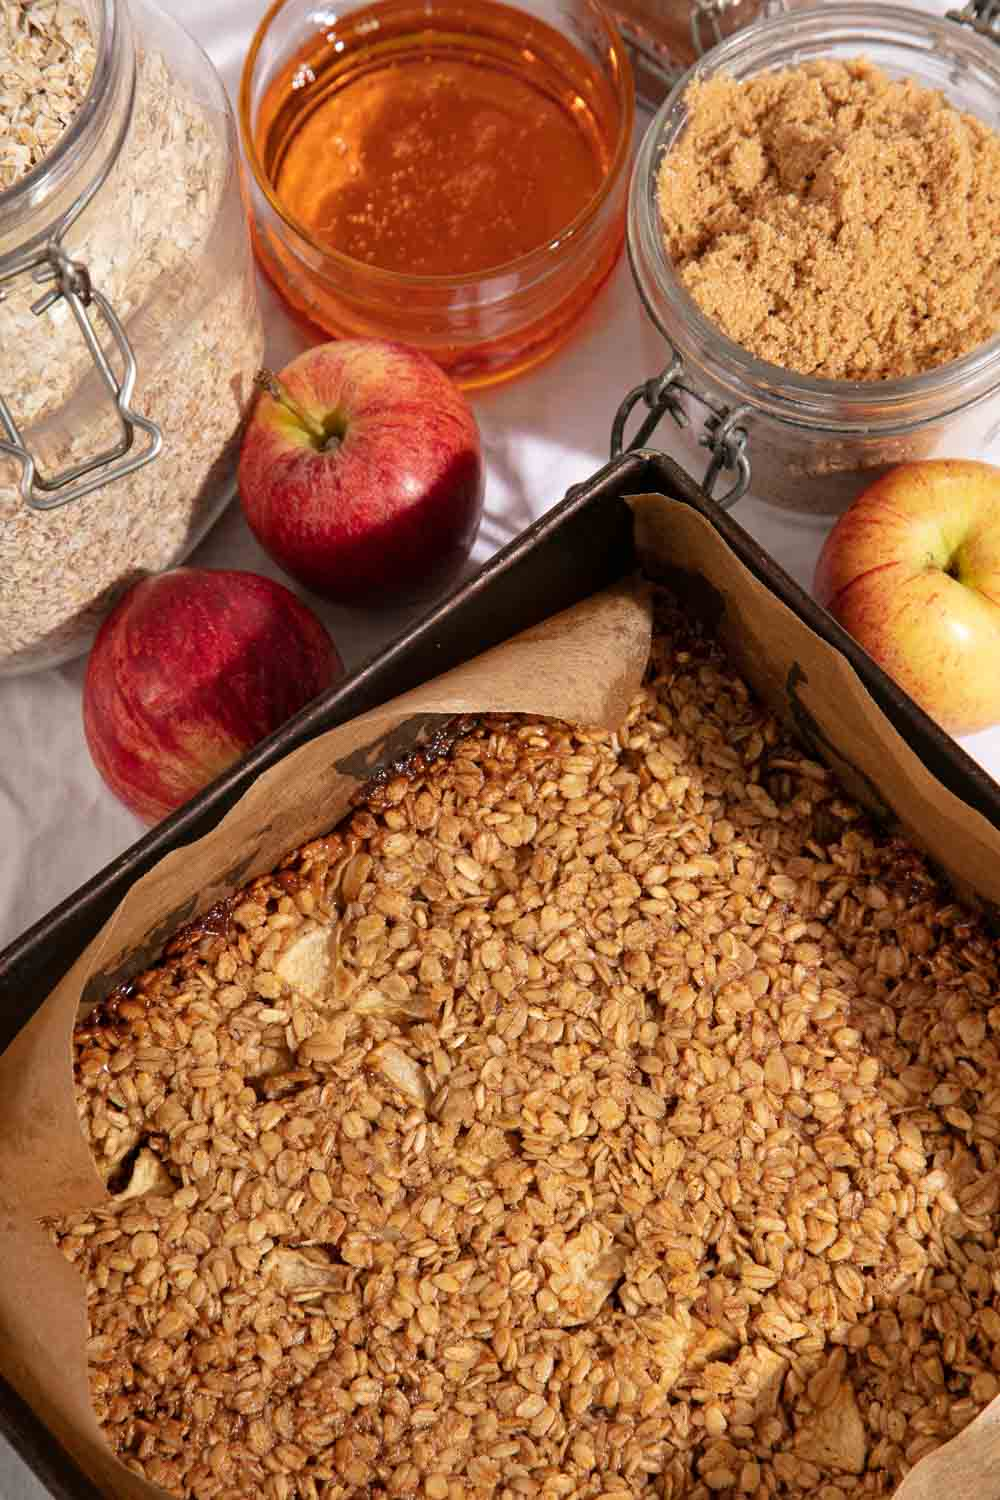 Cooked apple flapjack in its tin surrounded by the ingredients to make it.